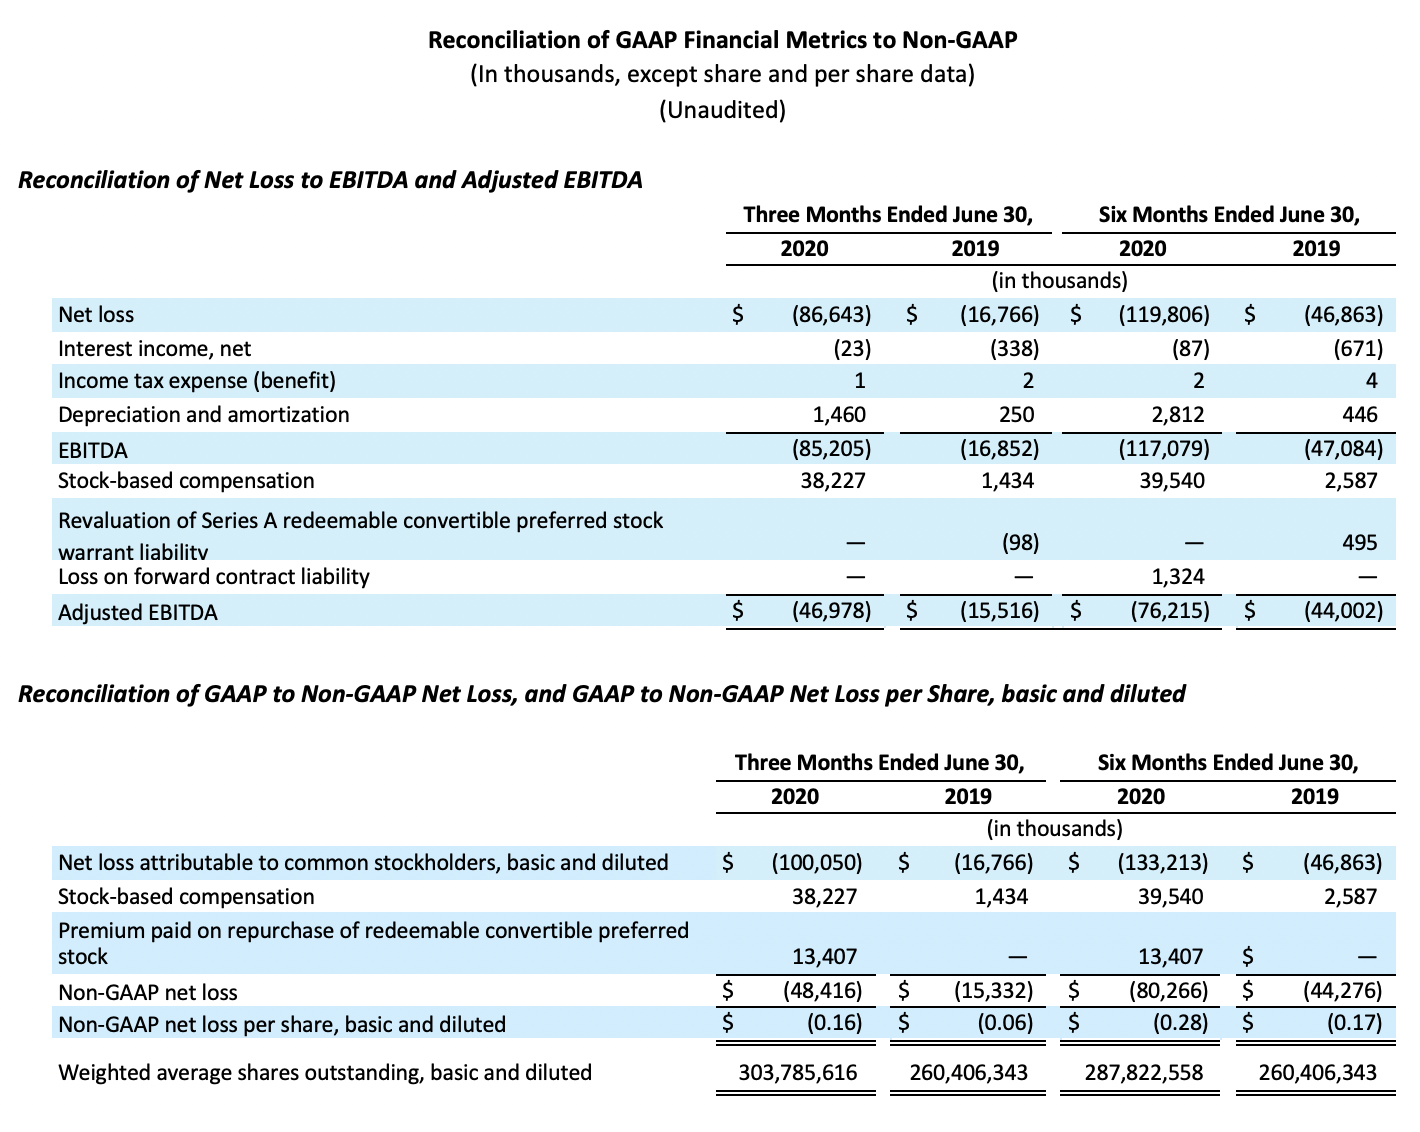 5Reconciliation of GAAP Financial Metrics to Non GAAP